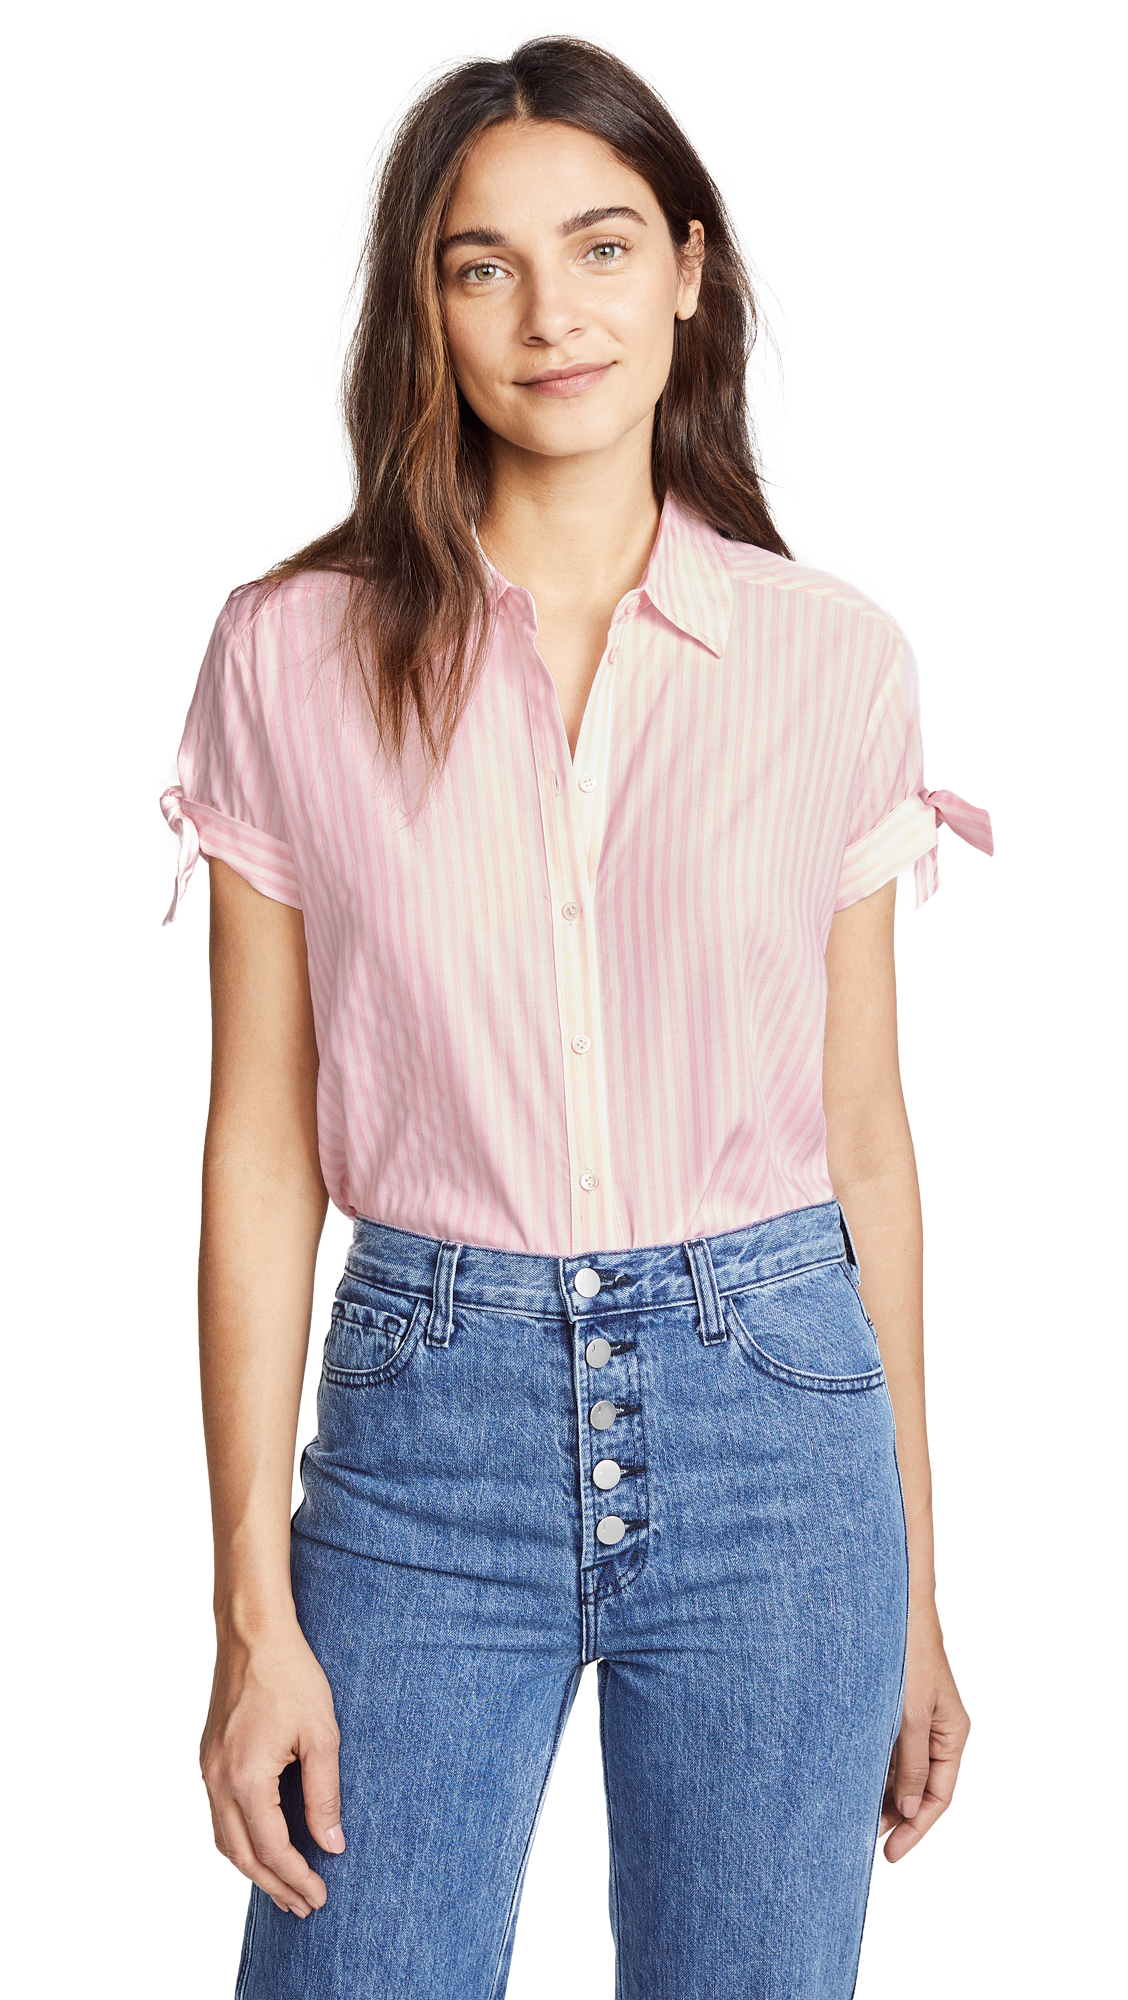 PAIGE Avery Top In Pink/White Stripe